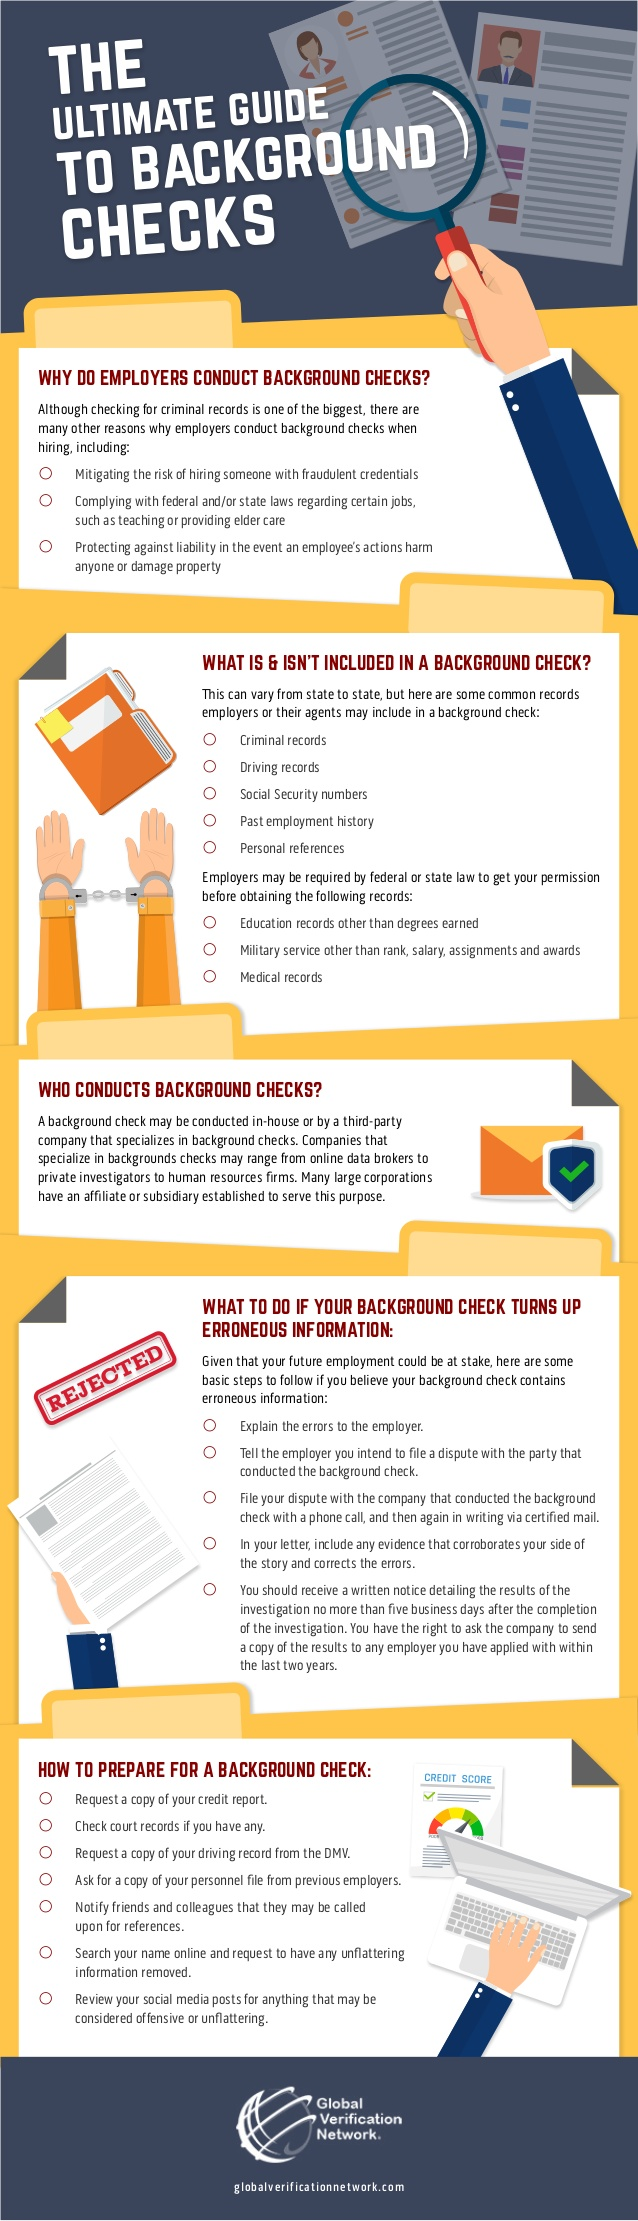 the-ultimate-guide-to-background-checks-1-638